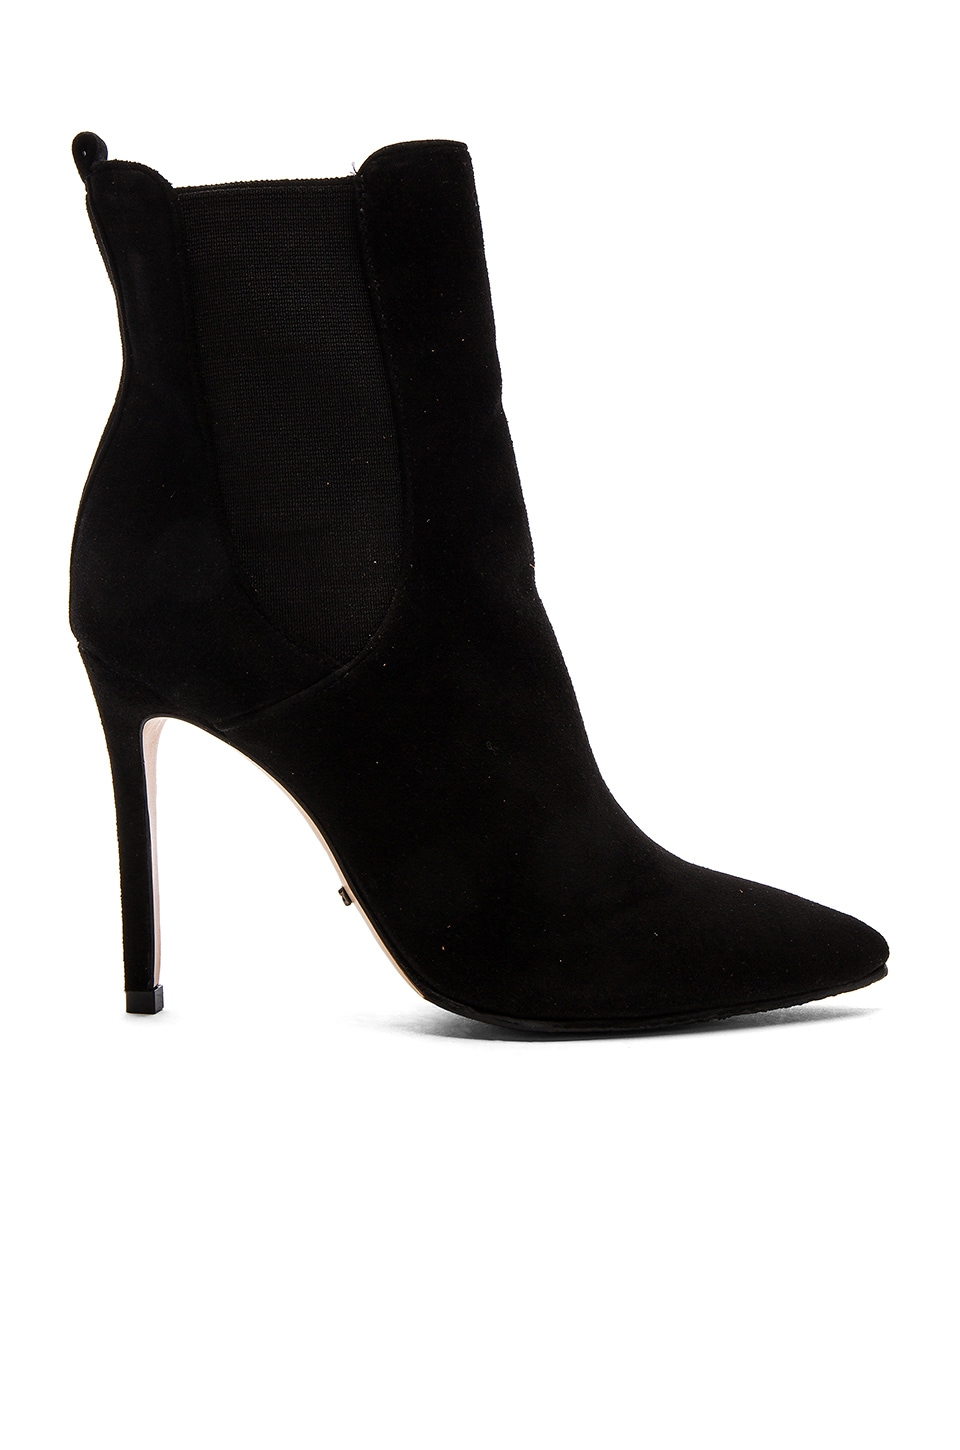 Schutz Basia Bootie in Black